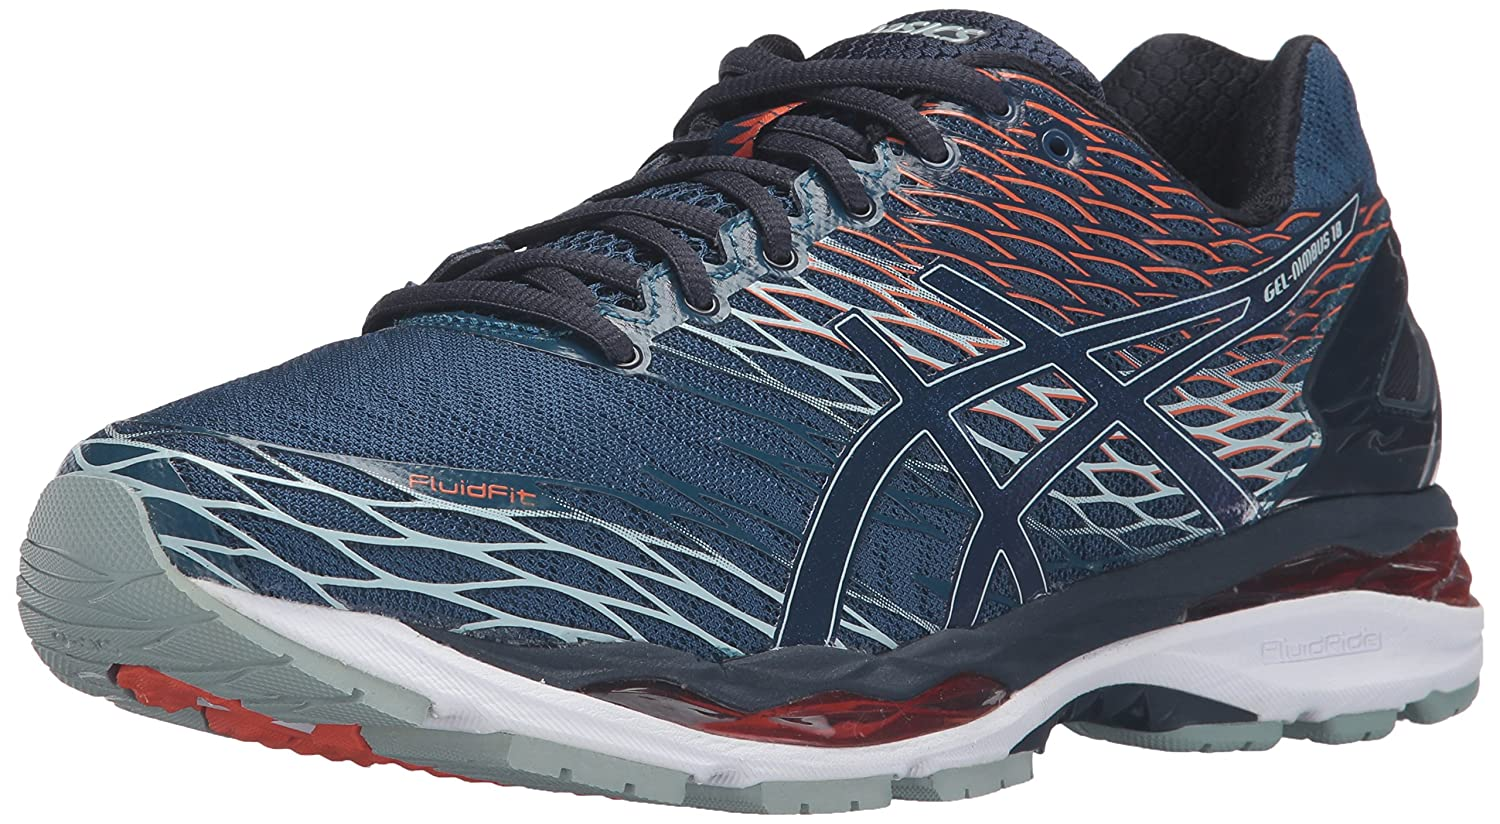 ASICS Men's Gel Nimbus 18 Running Shoe, PoseidonDark